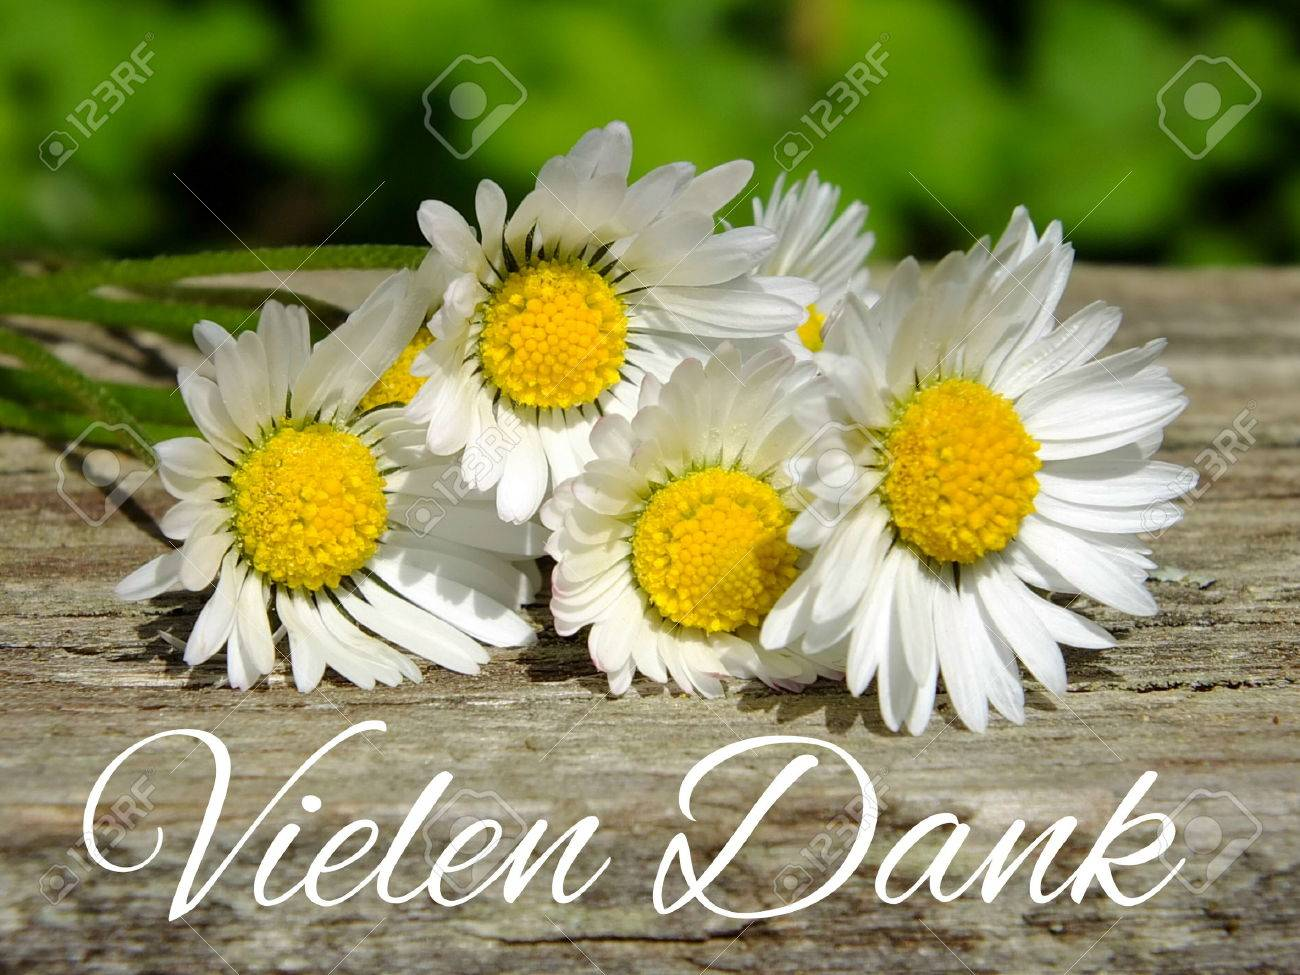 Image of daisies with German lettering Standard-Bild - 35143393